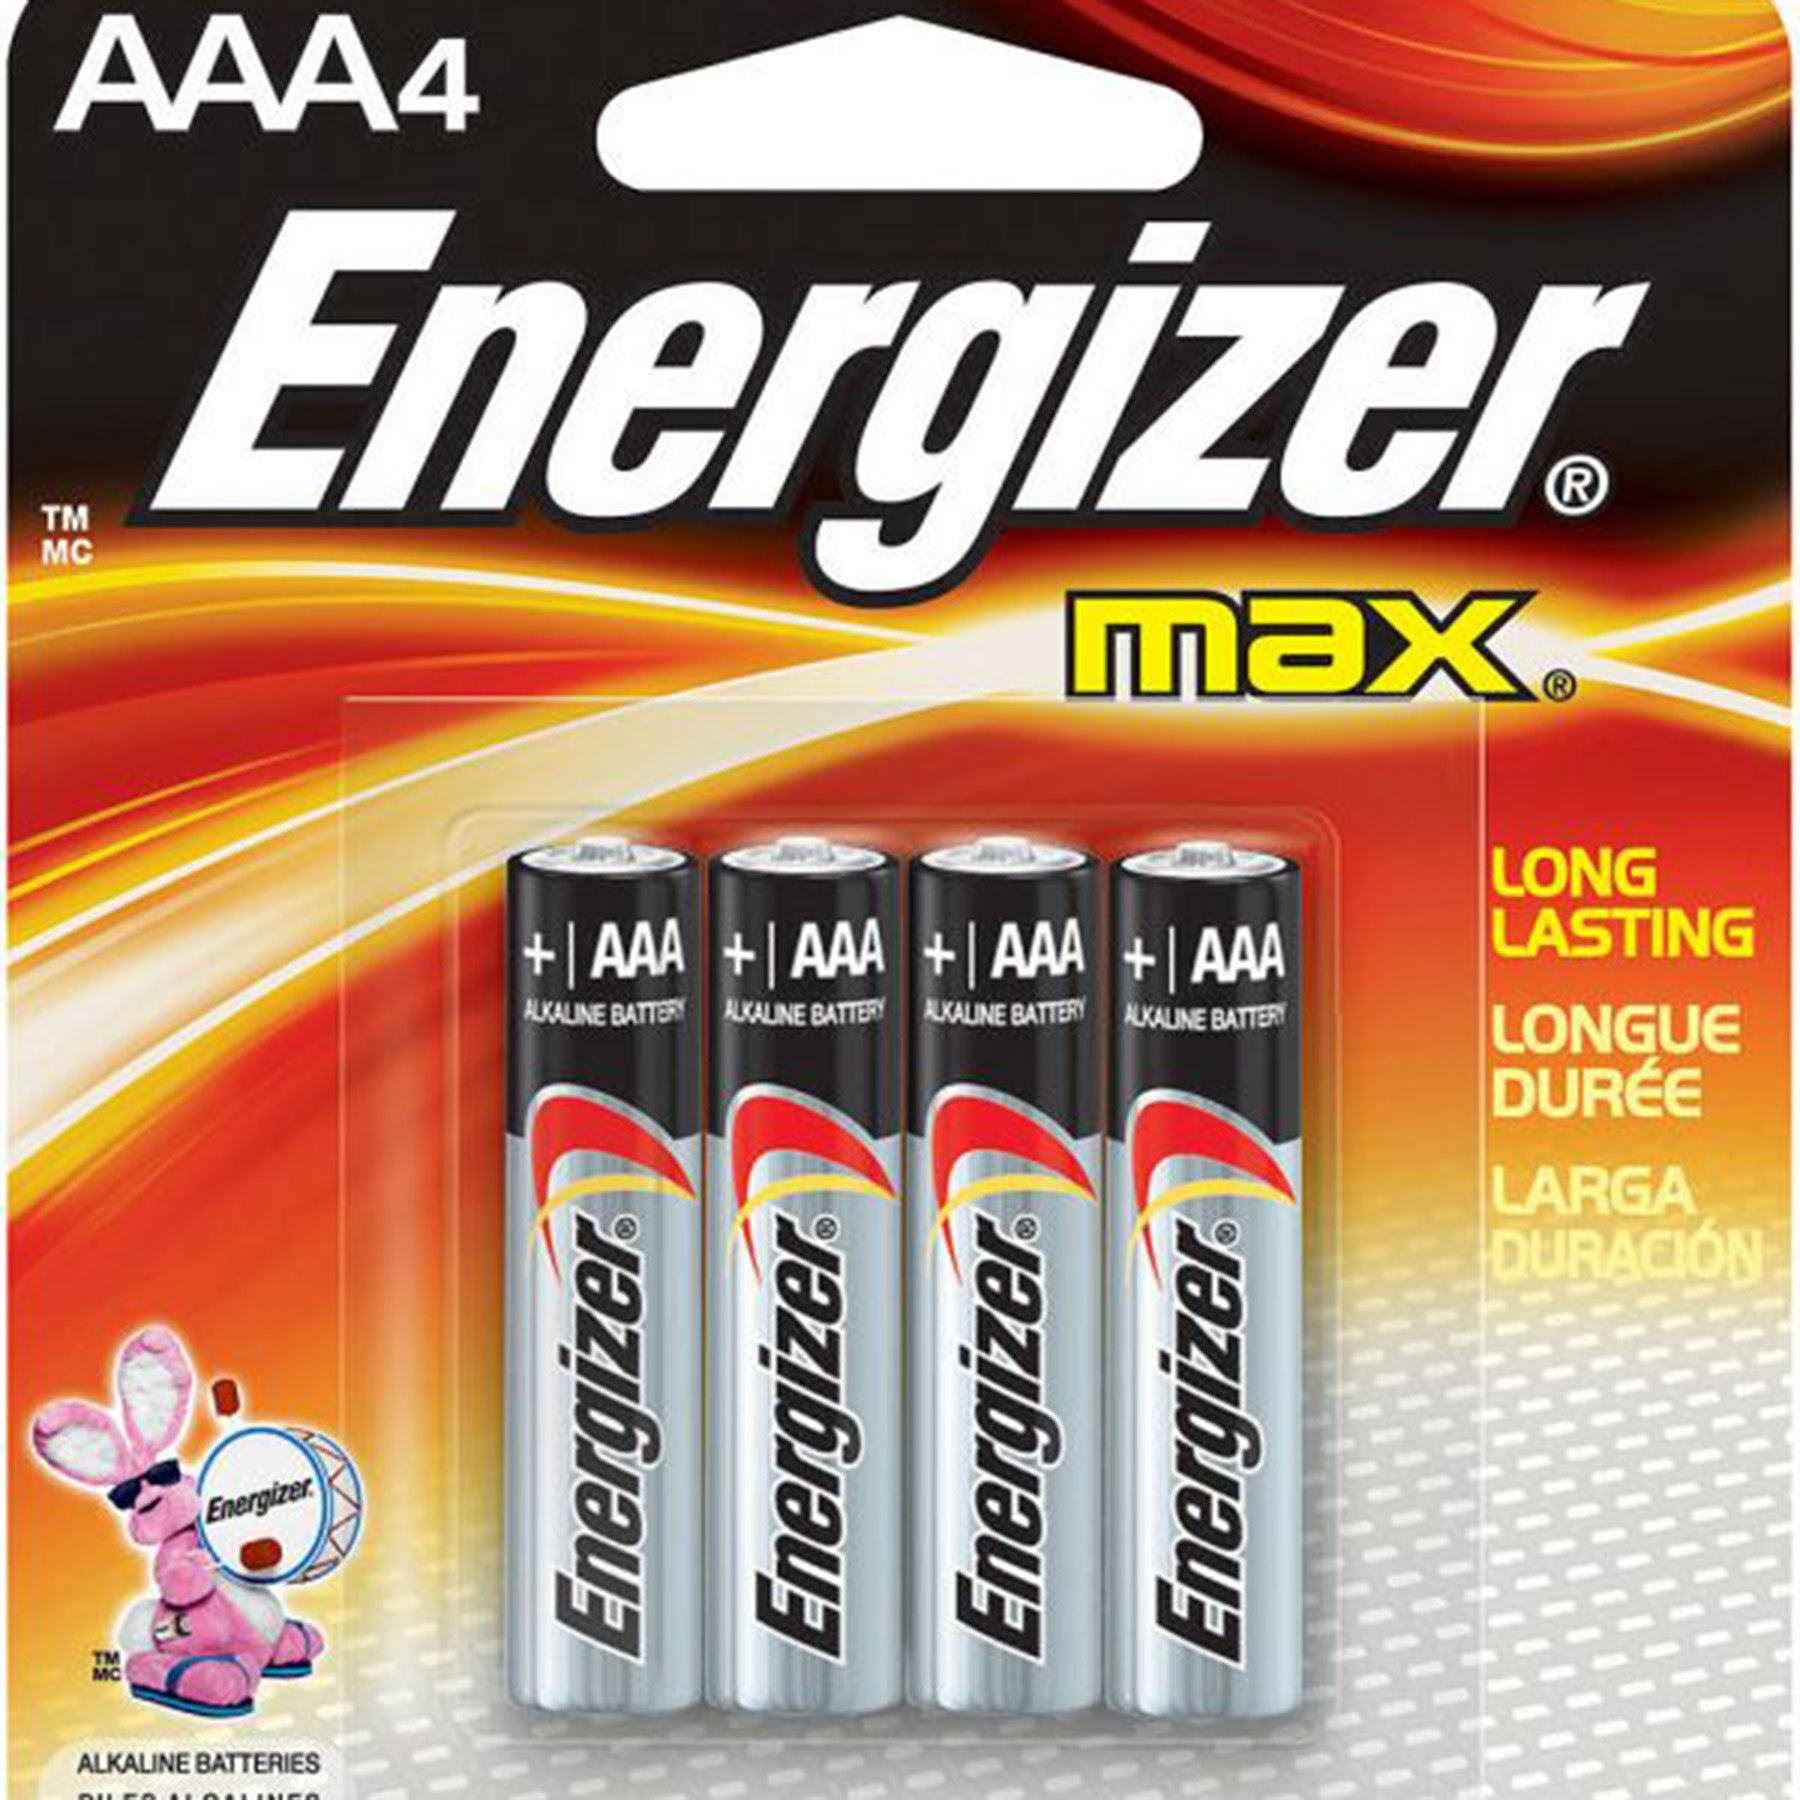 energizer AAA batteries 4-pack